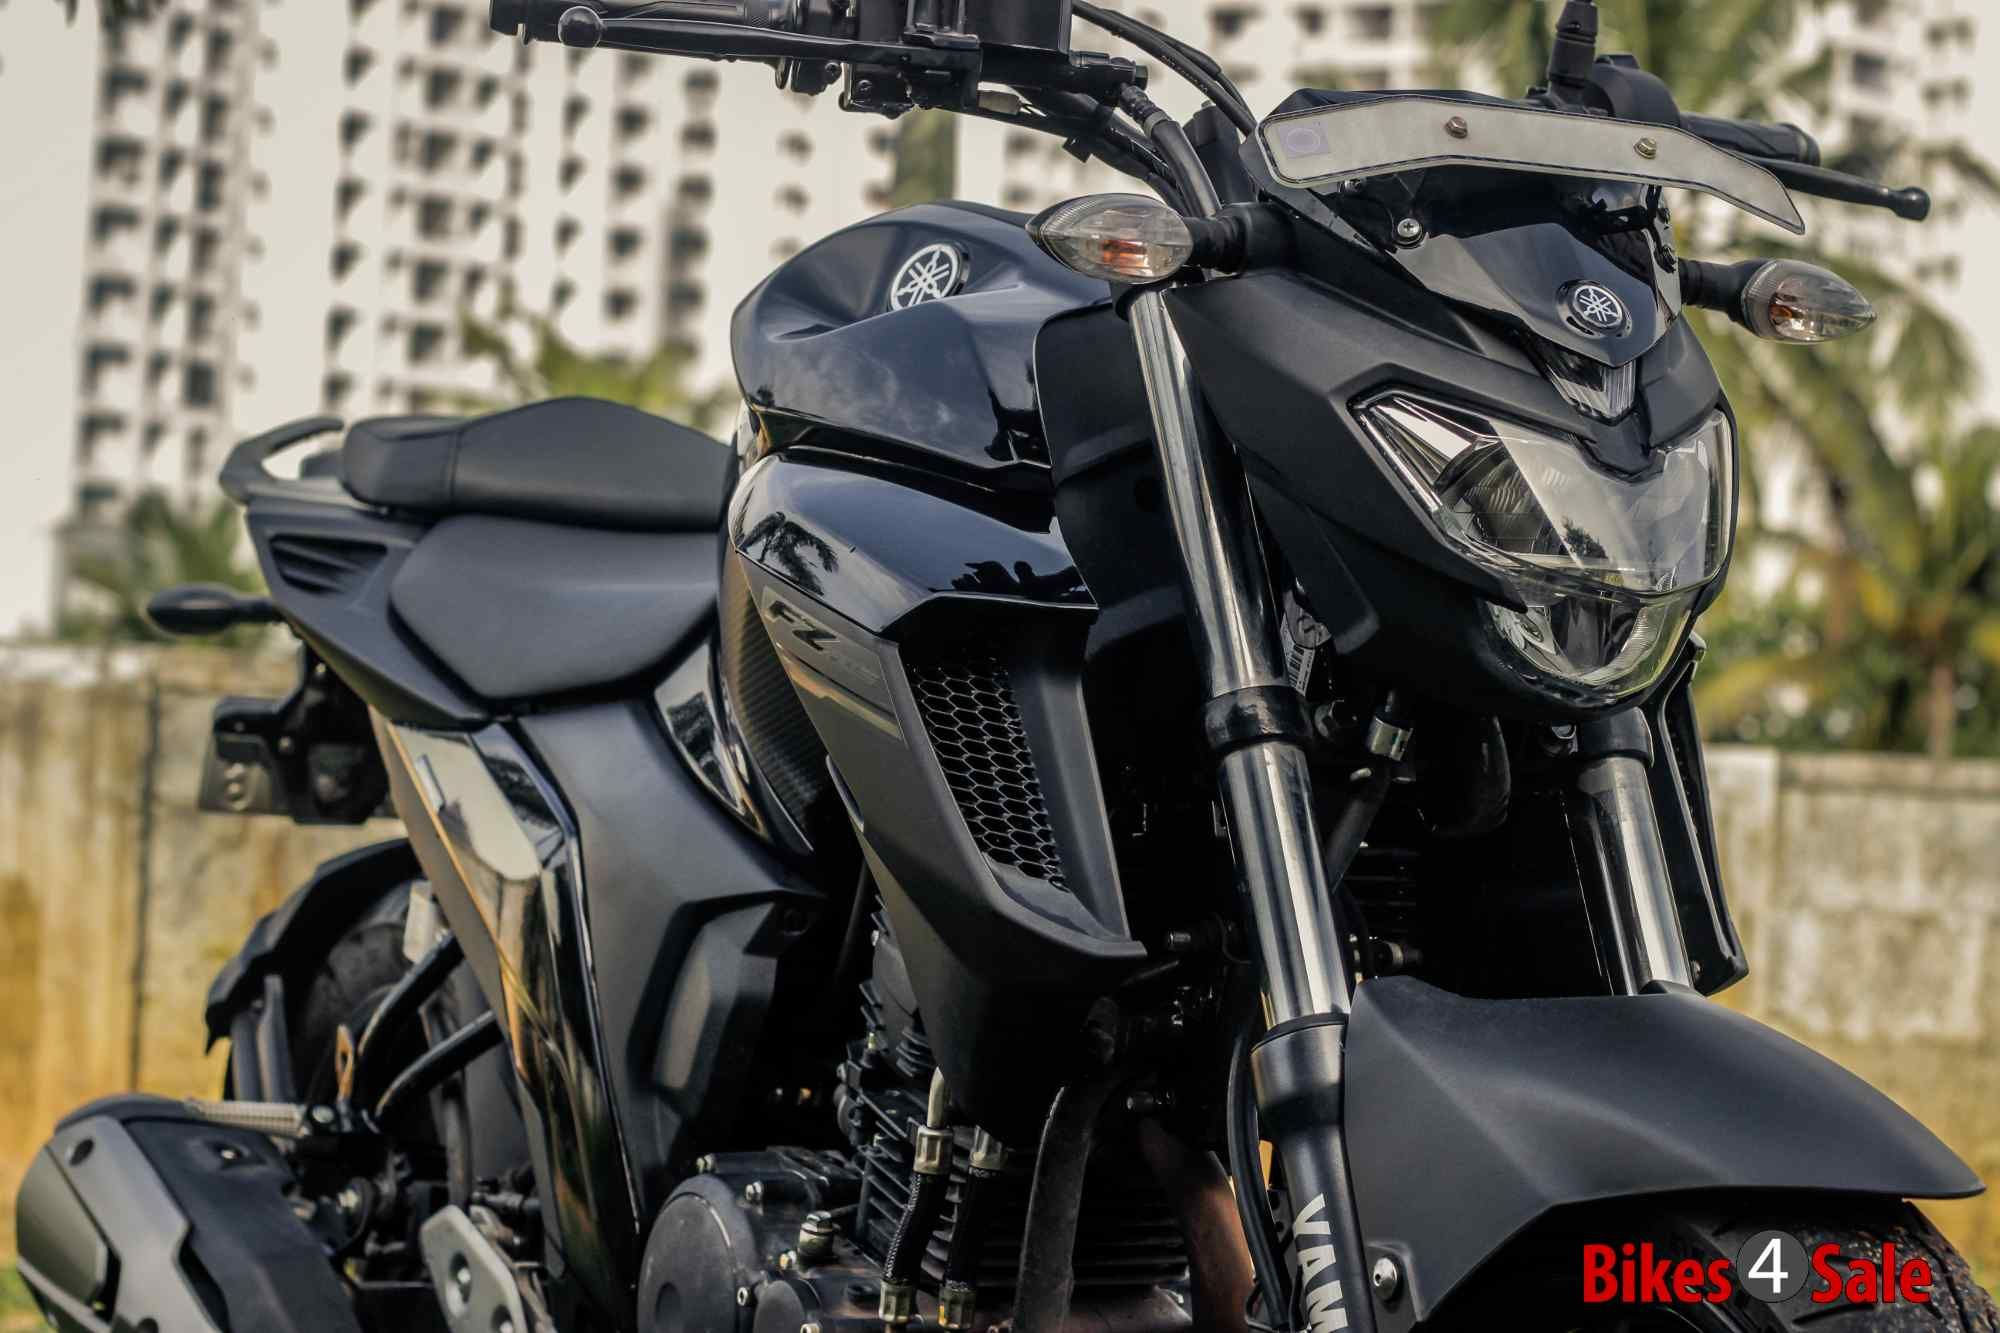 Yamaha Gst Price Update In 2020 Fz Bike Yamaha Bikes Yamaha